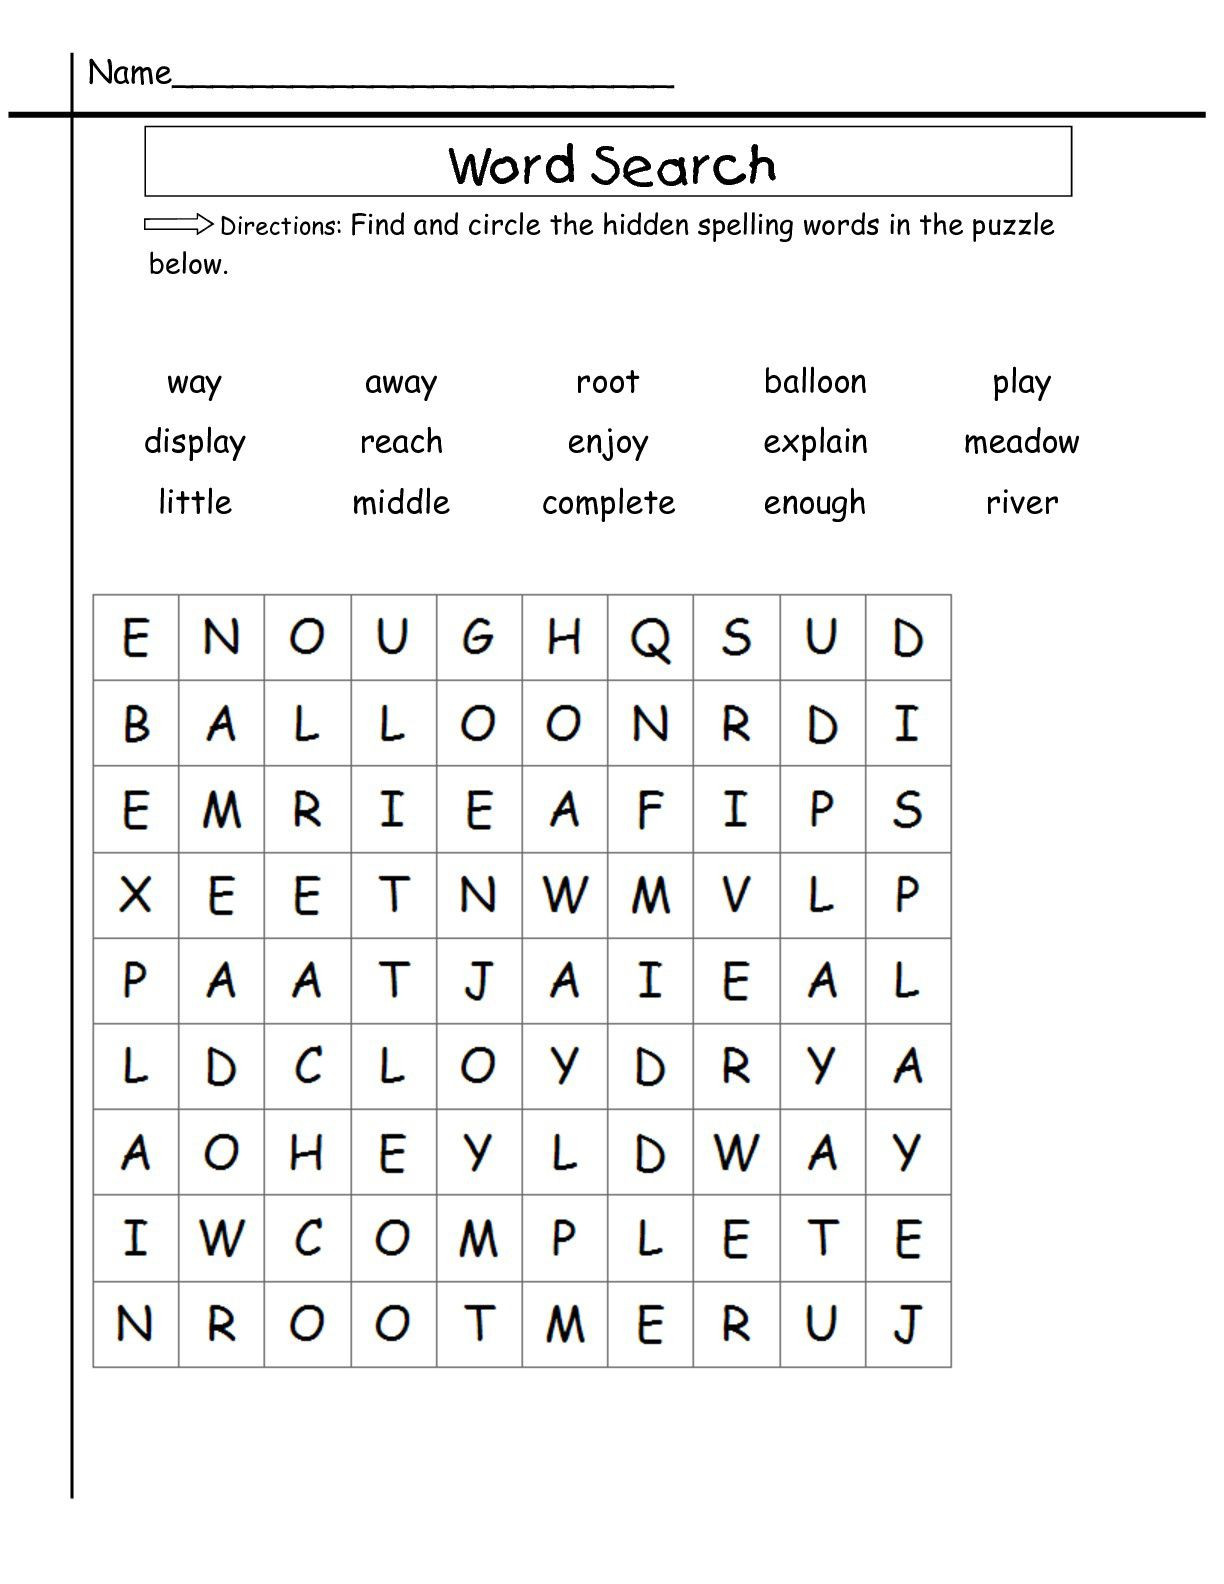 Spelling Worksheets 2nd Graders 2nd Grade Word Search Best Coloring Pages for Kids